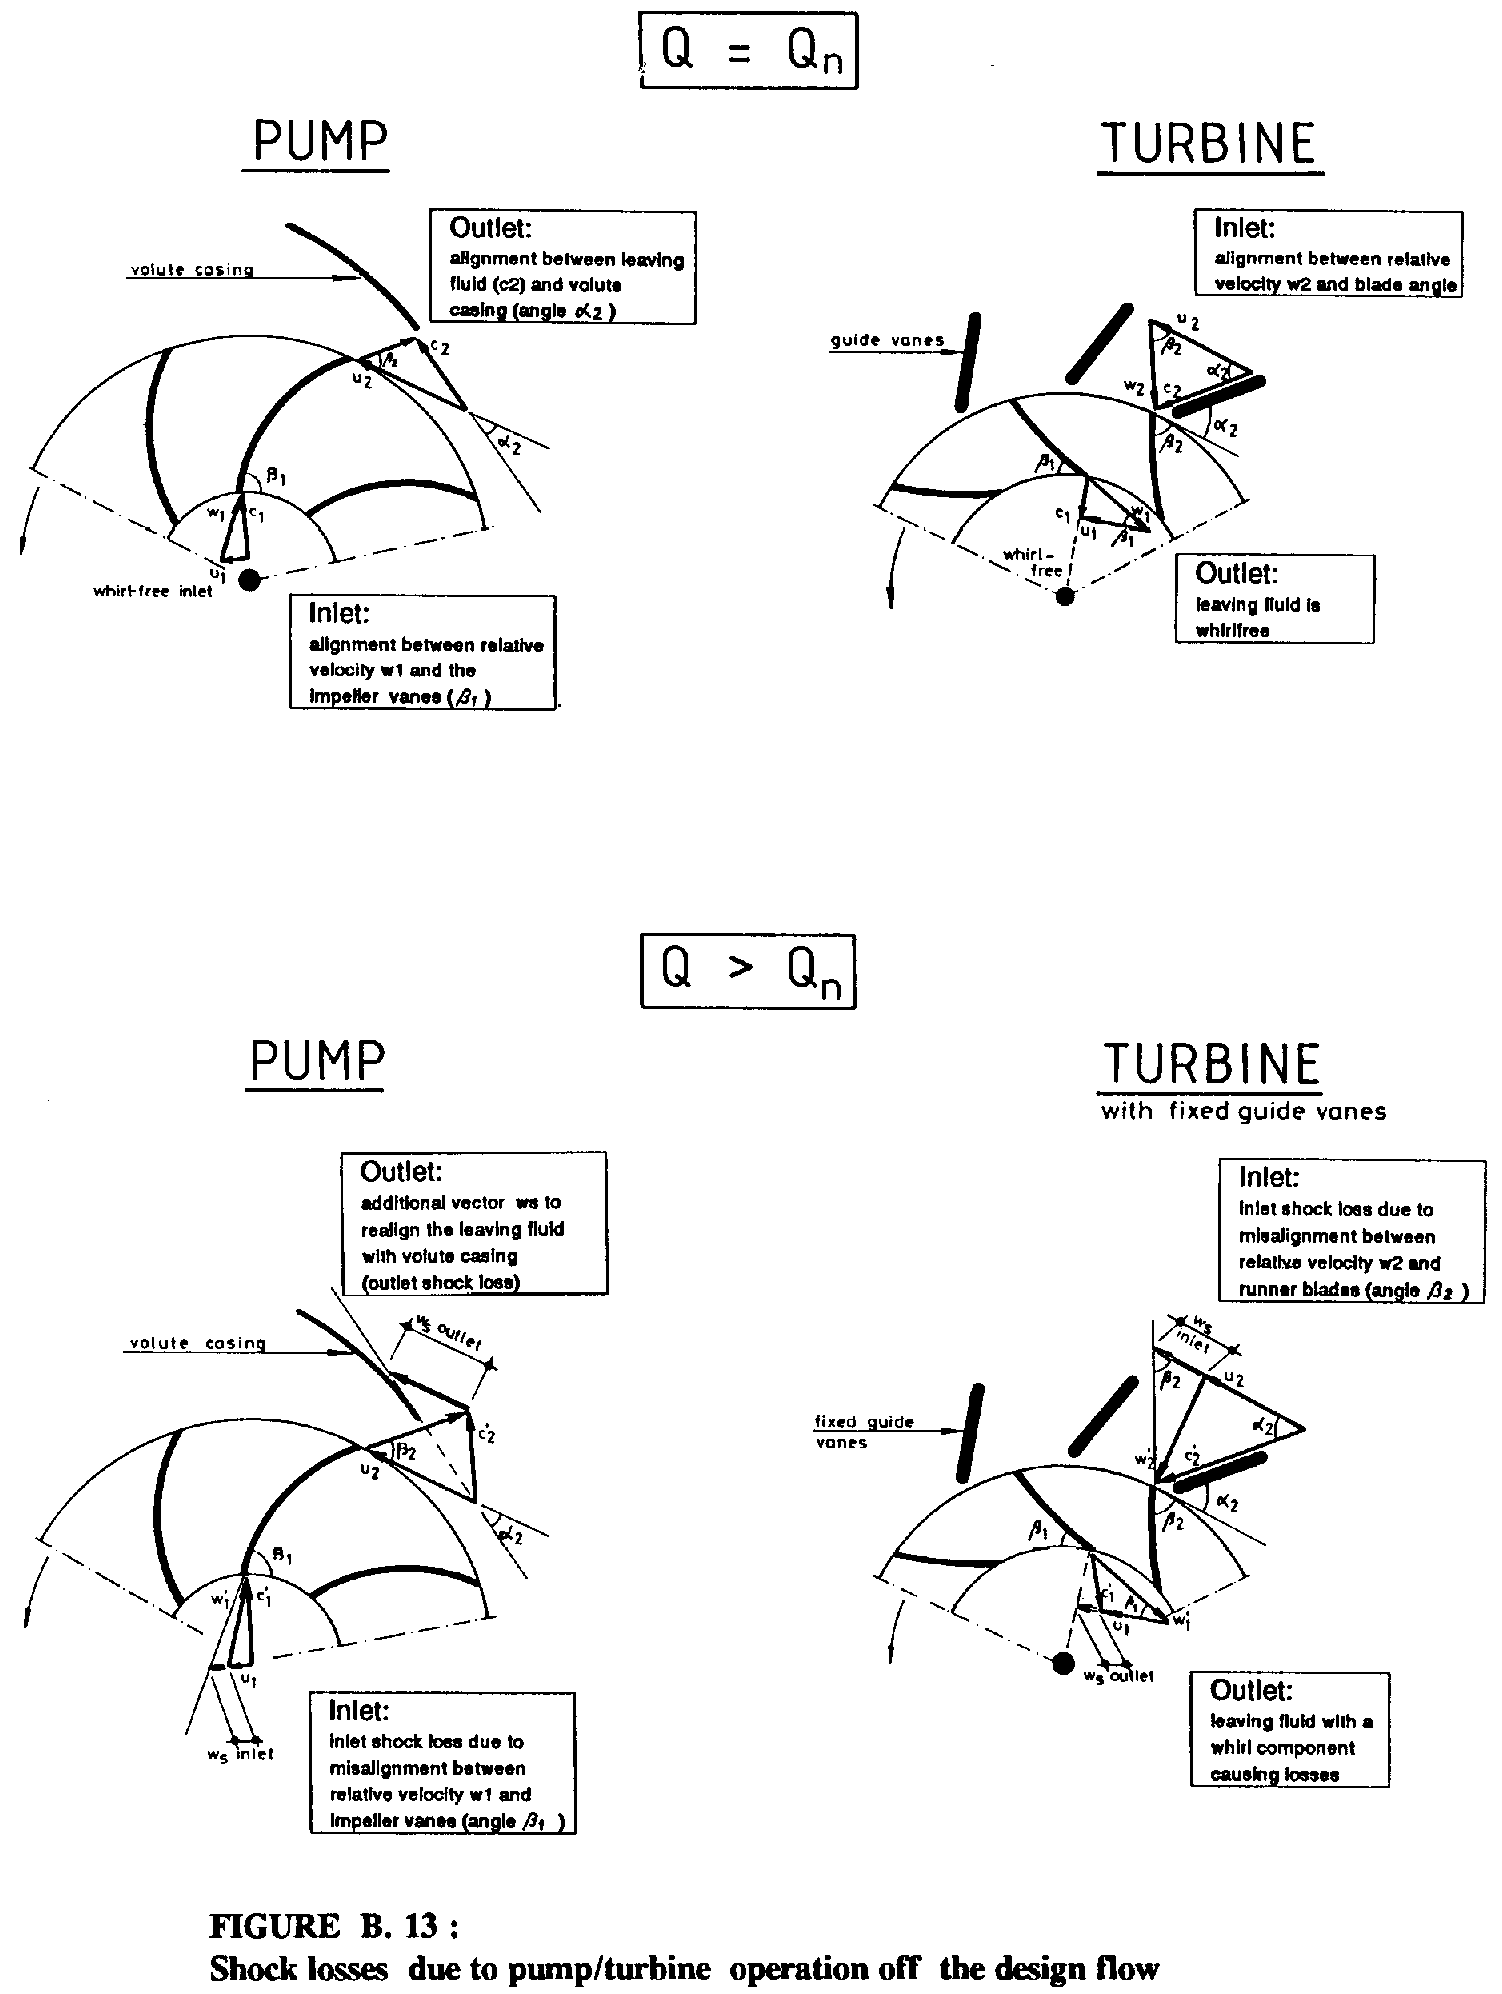 1 introduction figure 13 below shows the velocity vector diagrams for both a pump and a turbine ccuart Choice Image